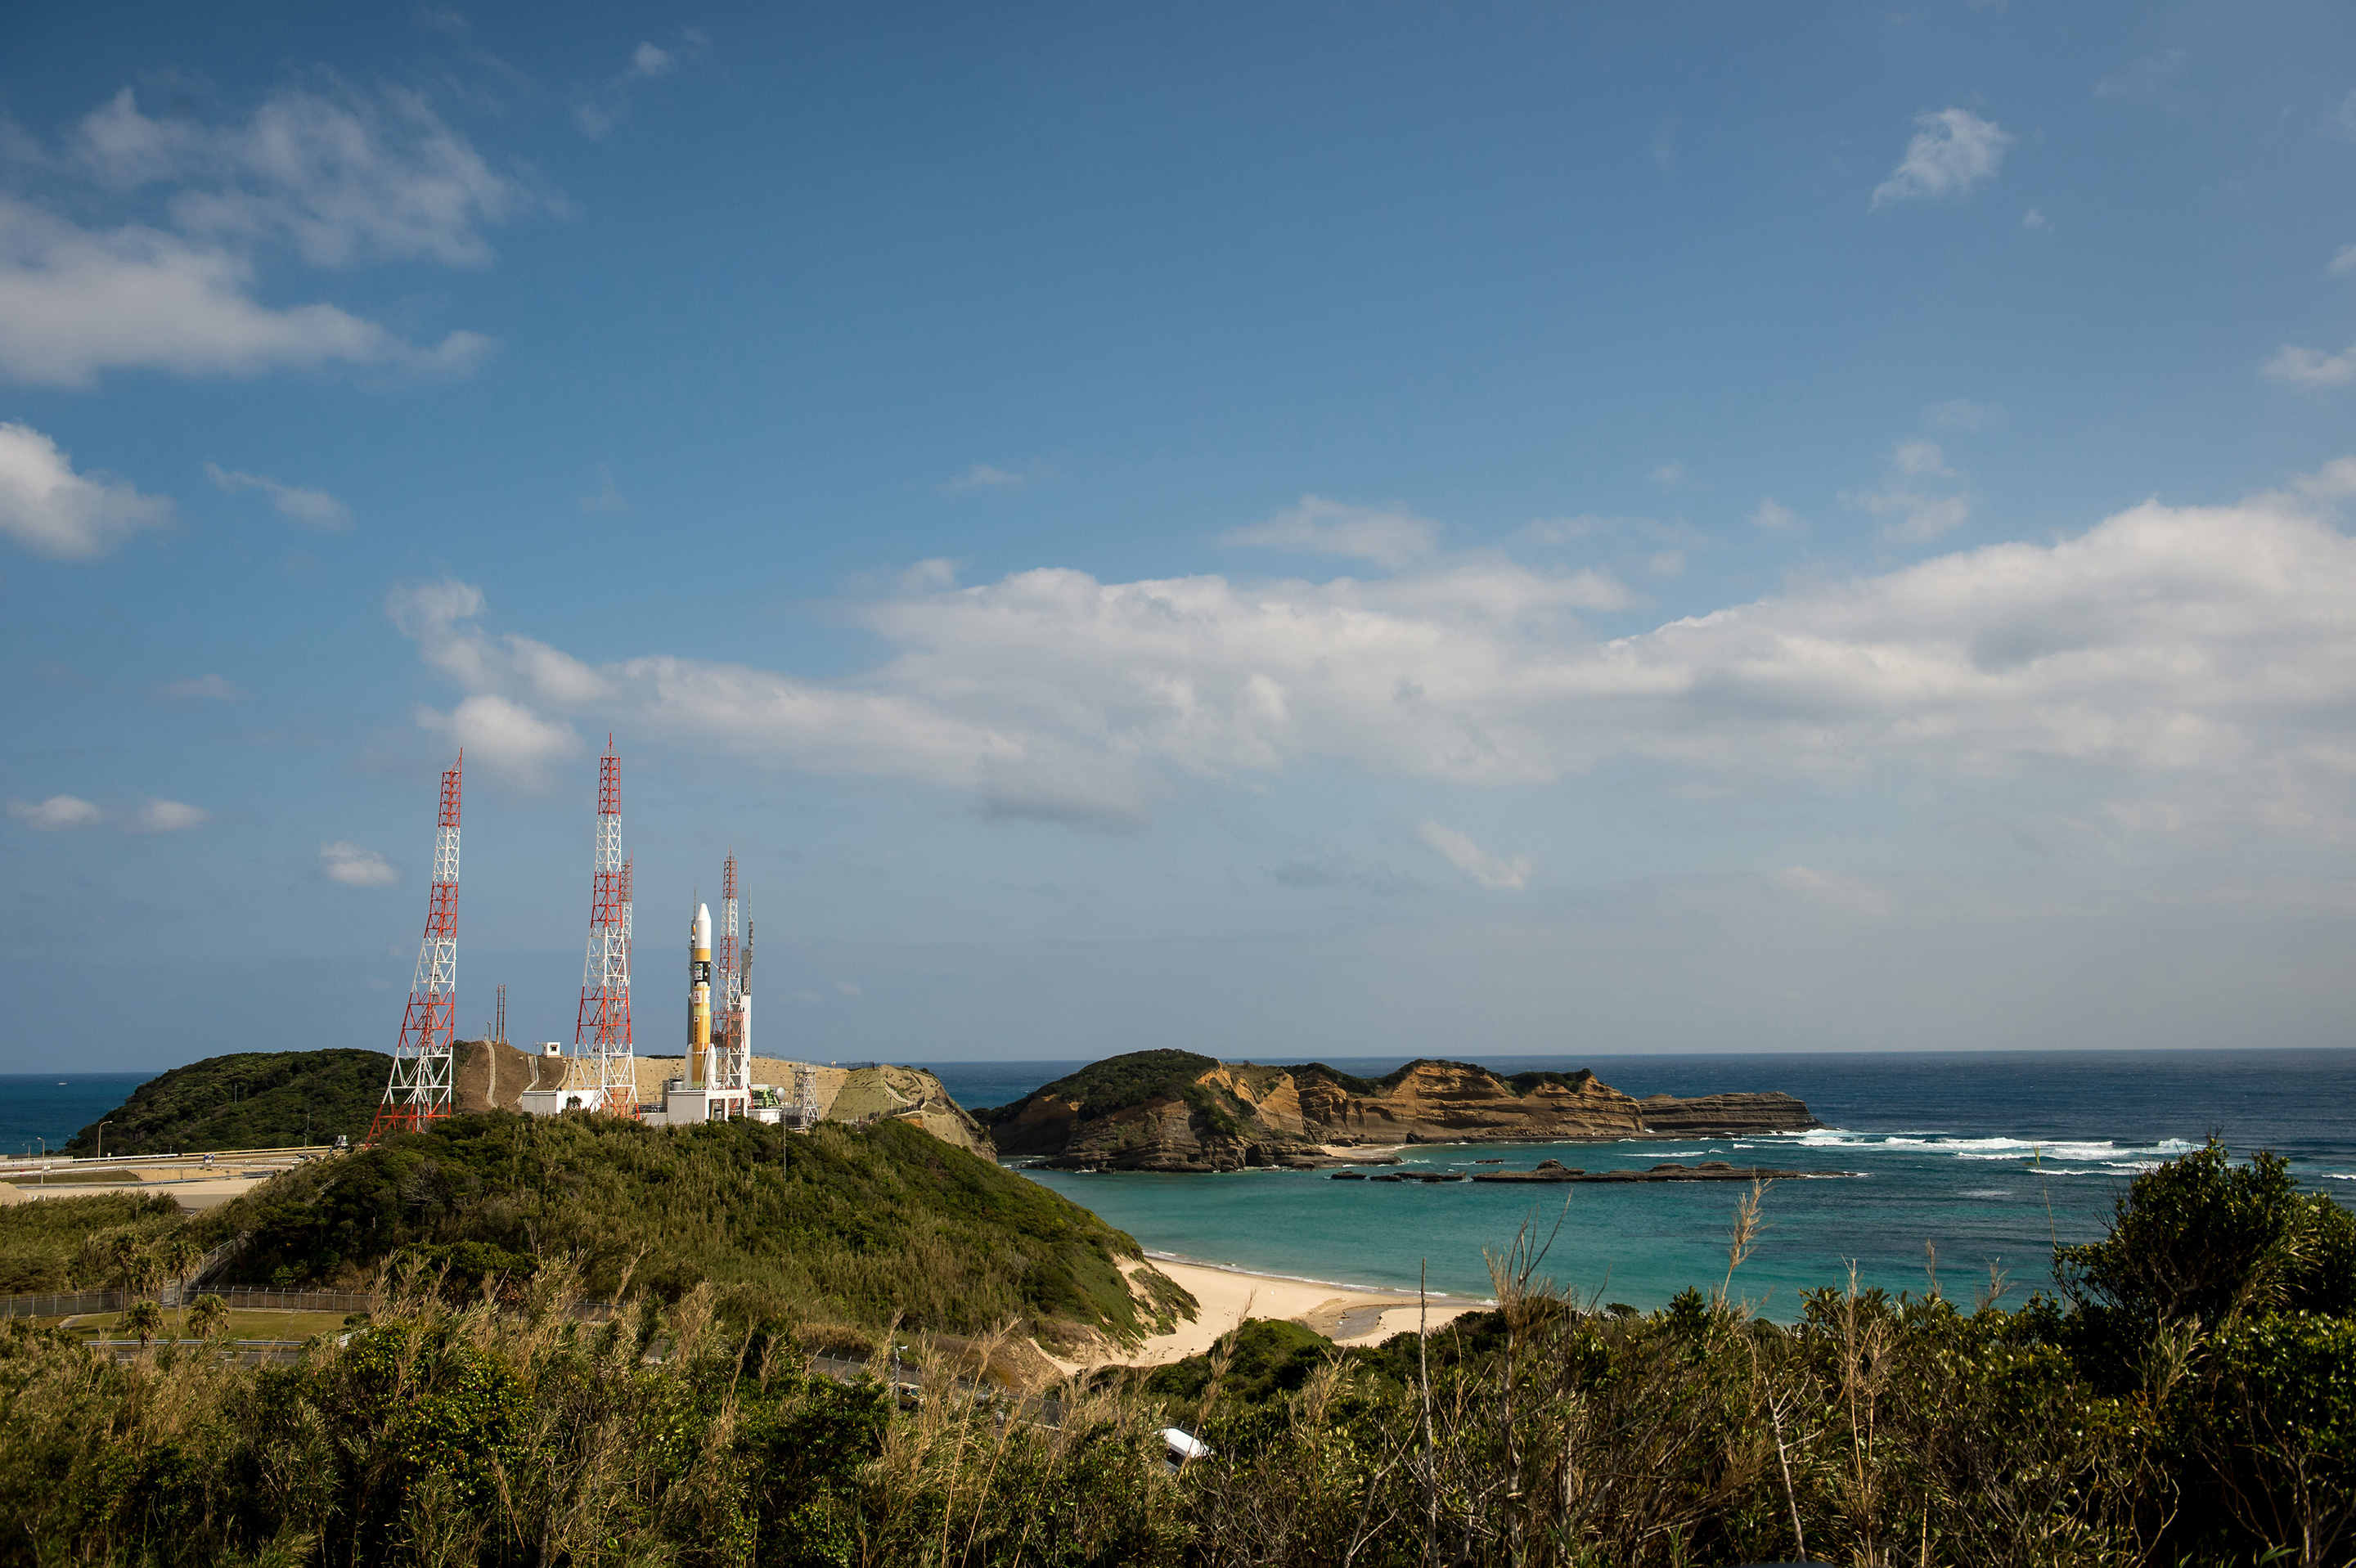 A Japanese H-IIA rocket carrying the NASA-Japan Aerospace Exploration Agency (JAXA), Global Precipitation Measurement (GPM) Core Observatory is seen as it rolls out to launch pad 1 of the Tanegashima Space Center on Feb. 27, 2014. The GPM spacecraft will collect information that unifies data from an international network of satellites to map global rainfall and snowfall every three hours. Photo: NASA/Bill Ingalls